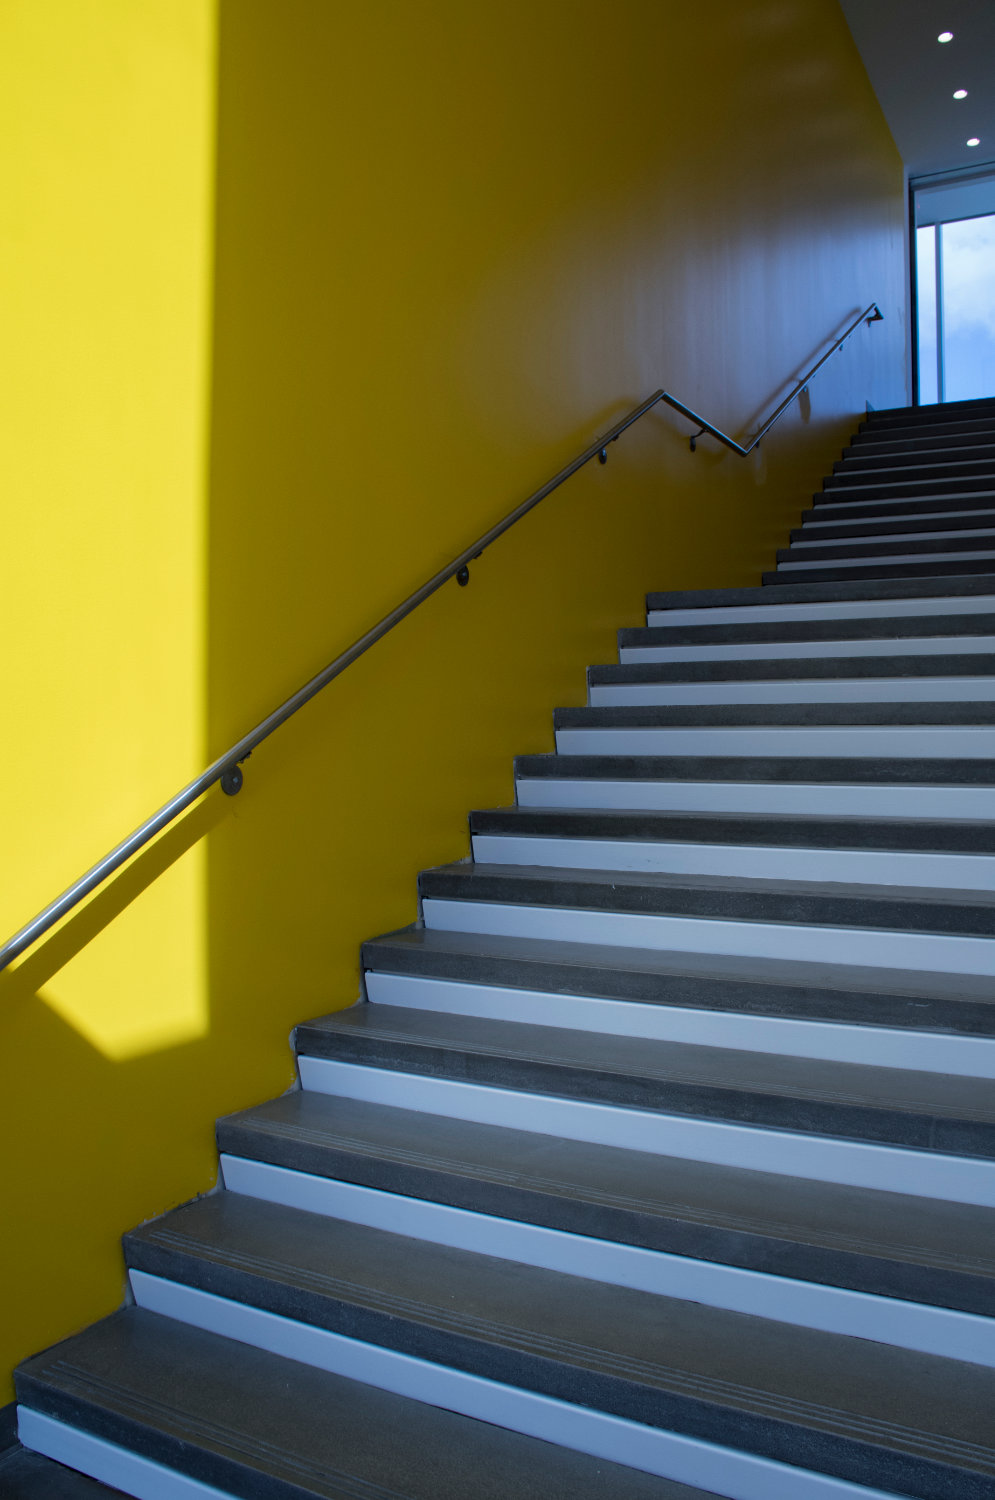 A staircase accented by a vivid yellow wall.